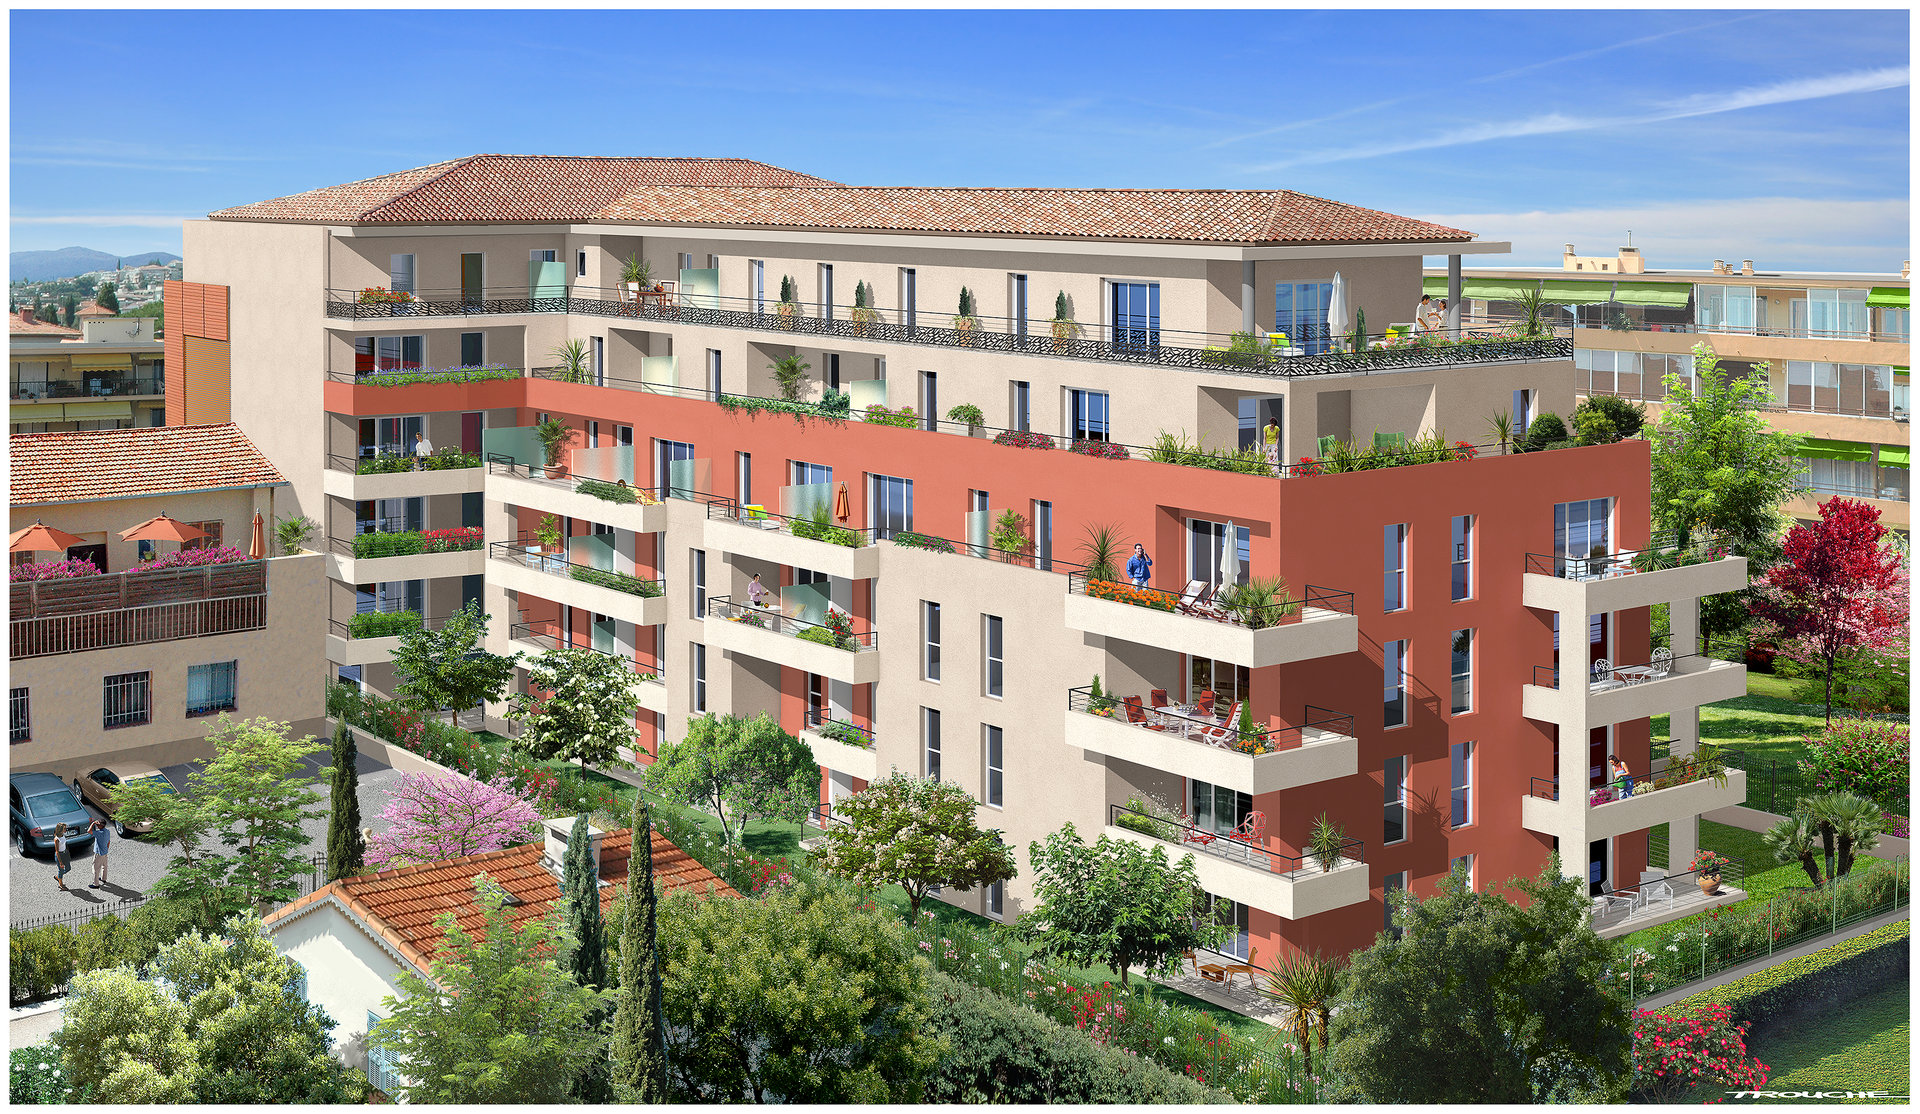 Saint Laurent du Var (06700) - Appartement -2P 42,17 m2 neuf